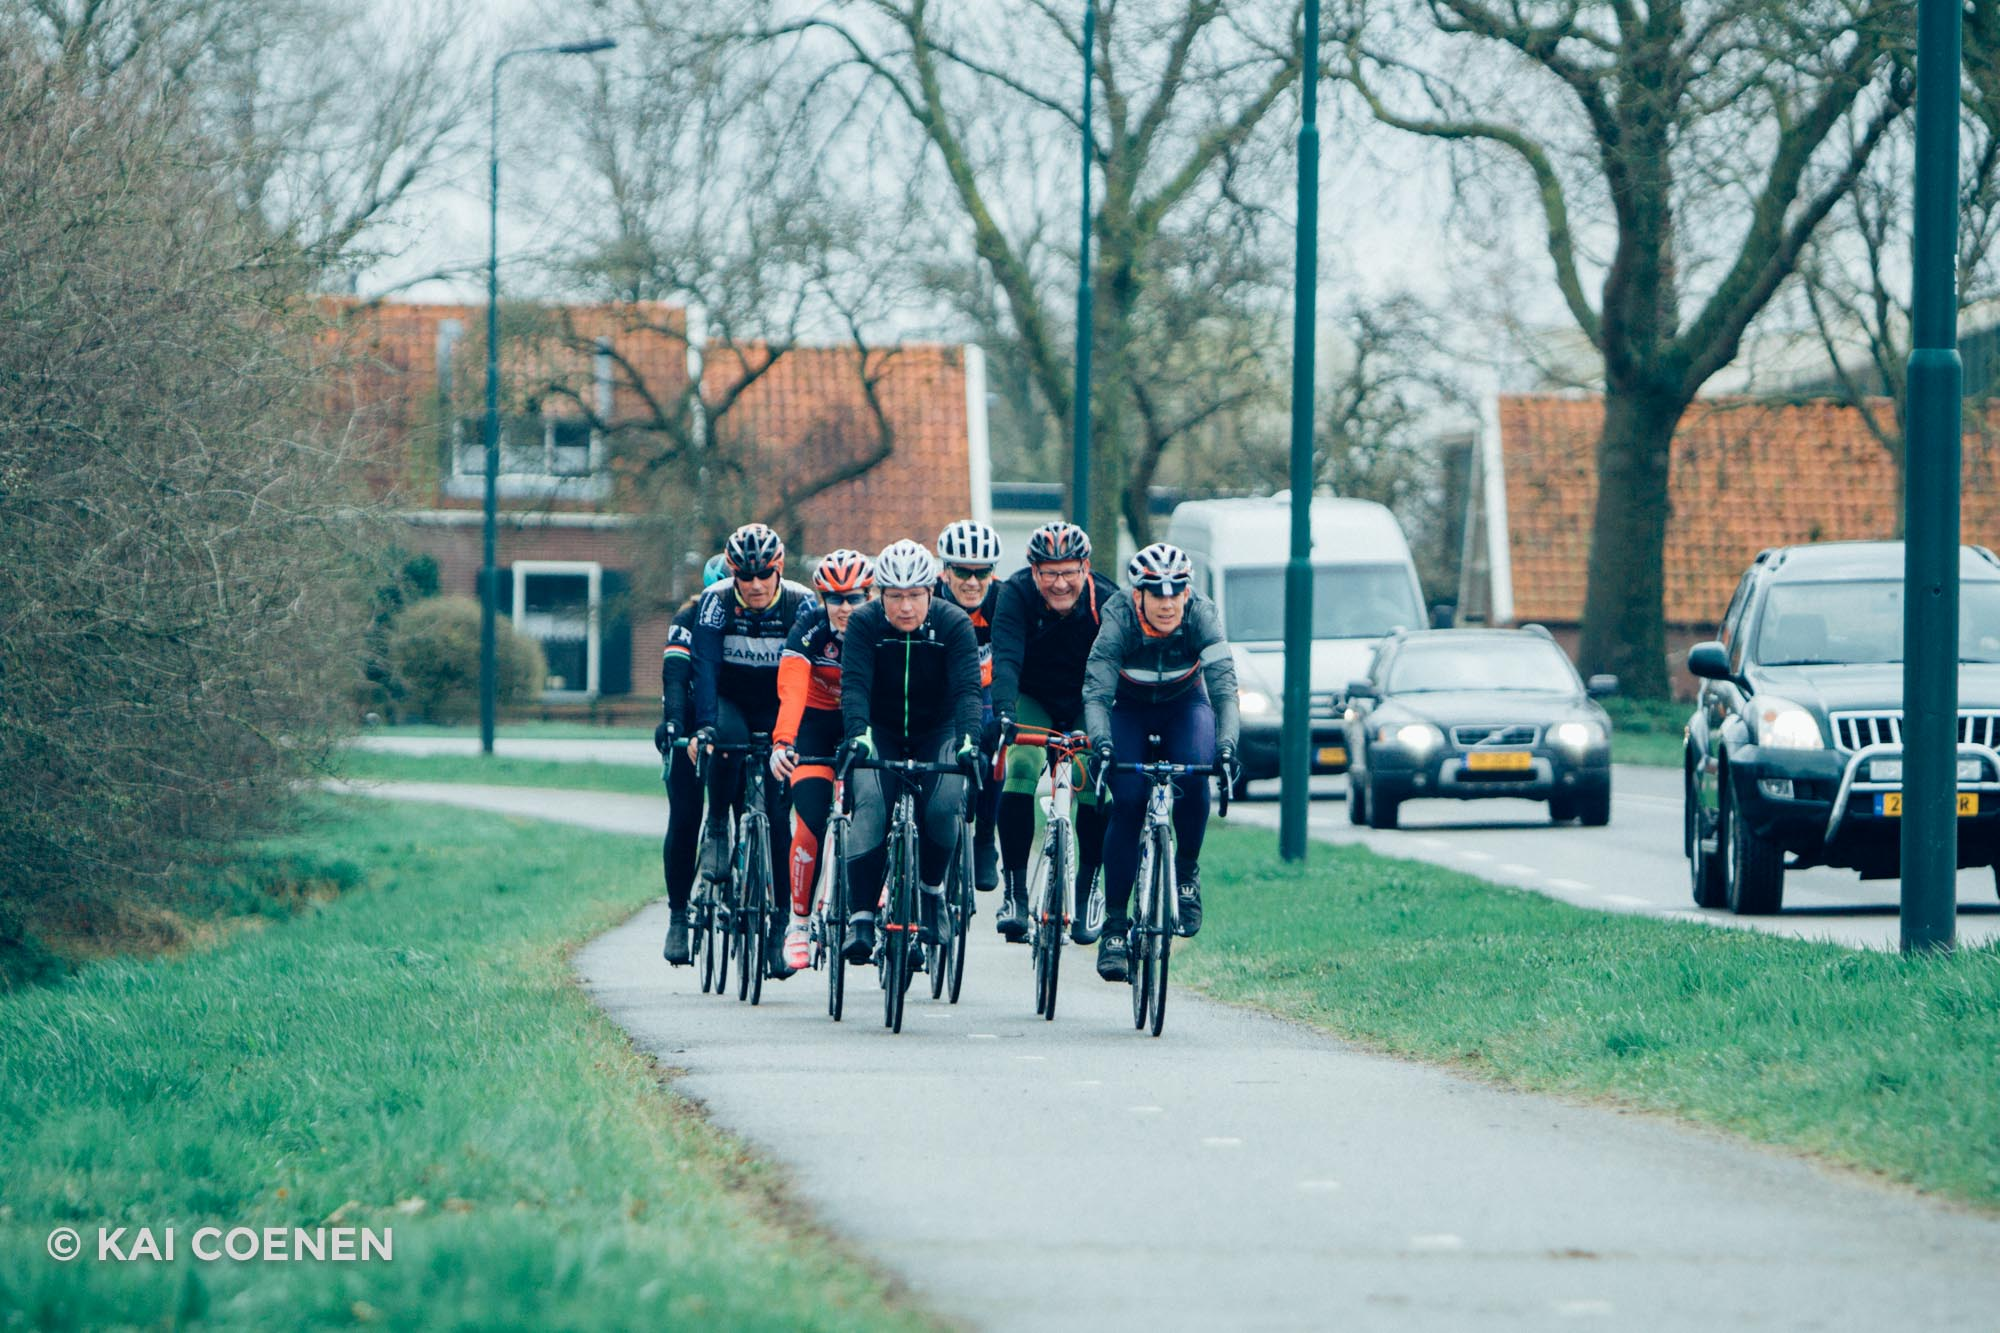 Rapha – Braver then the elements tour